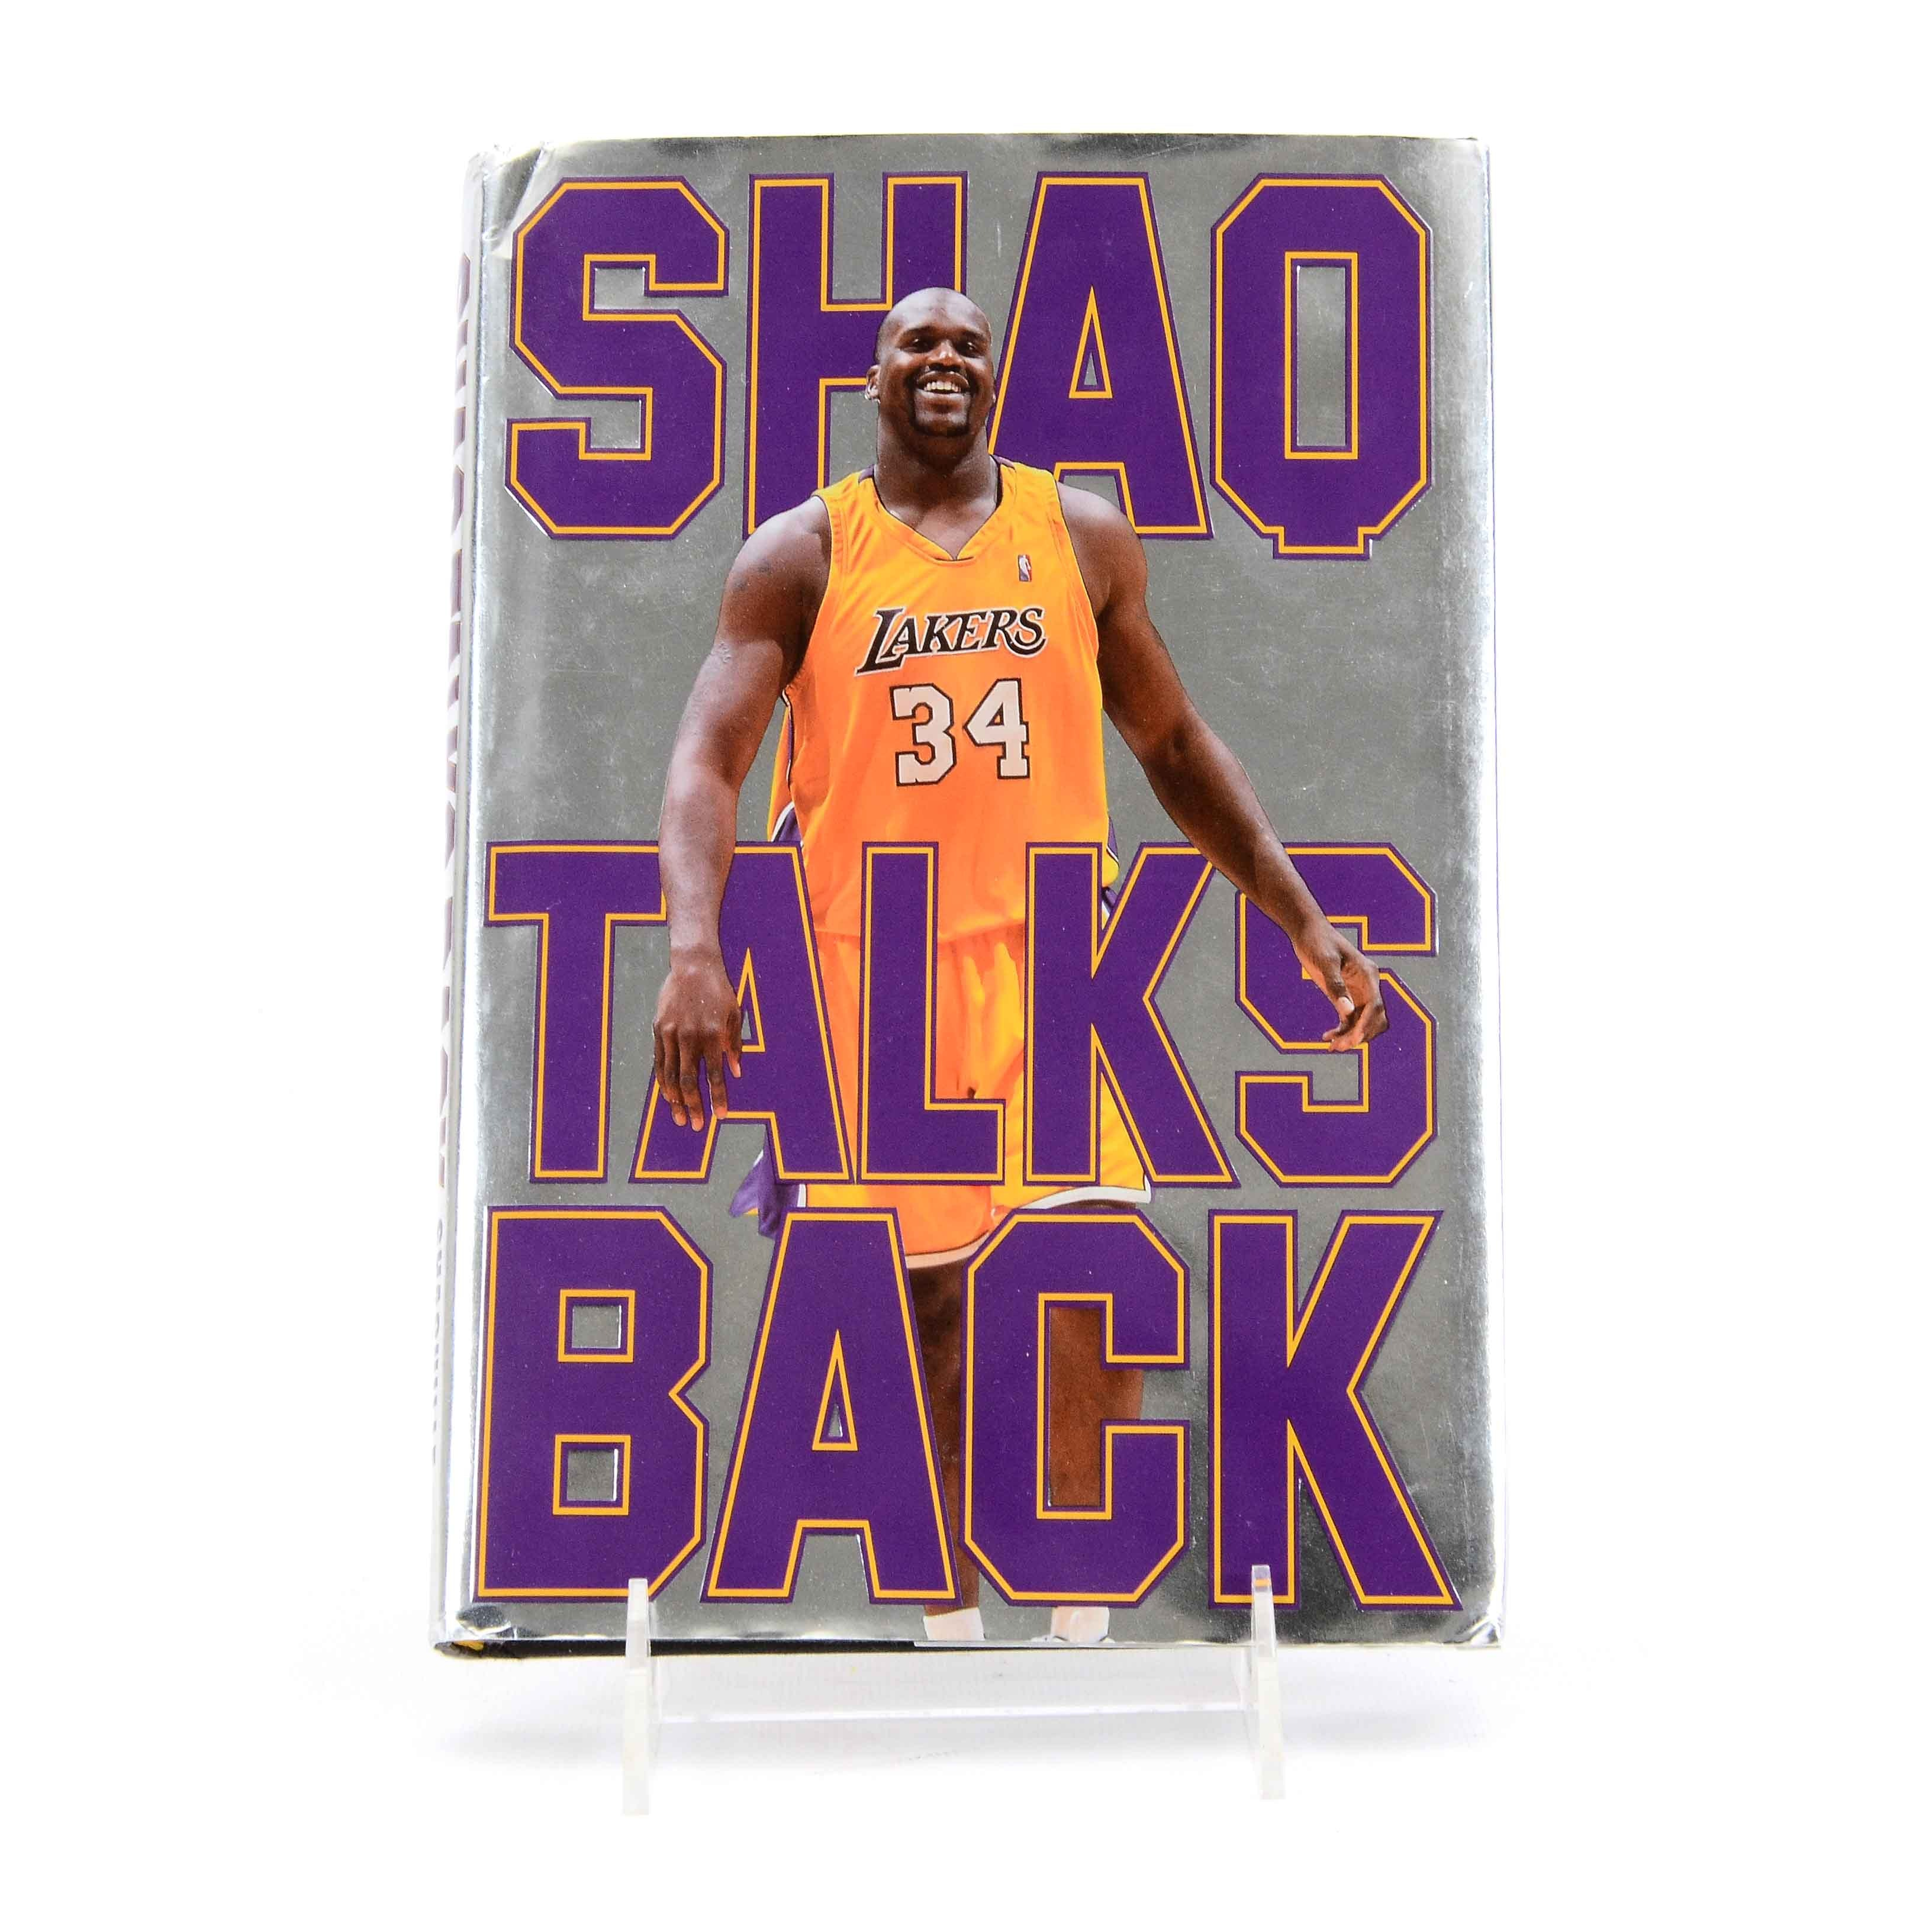 """Signed """"Shaq Talks Back"""" by Shaquille O'Neal"""